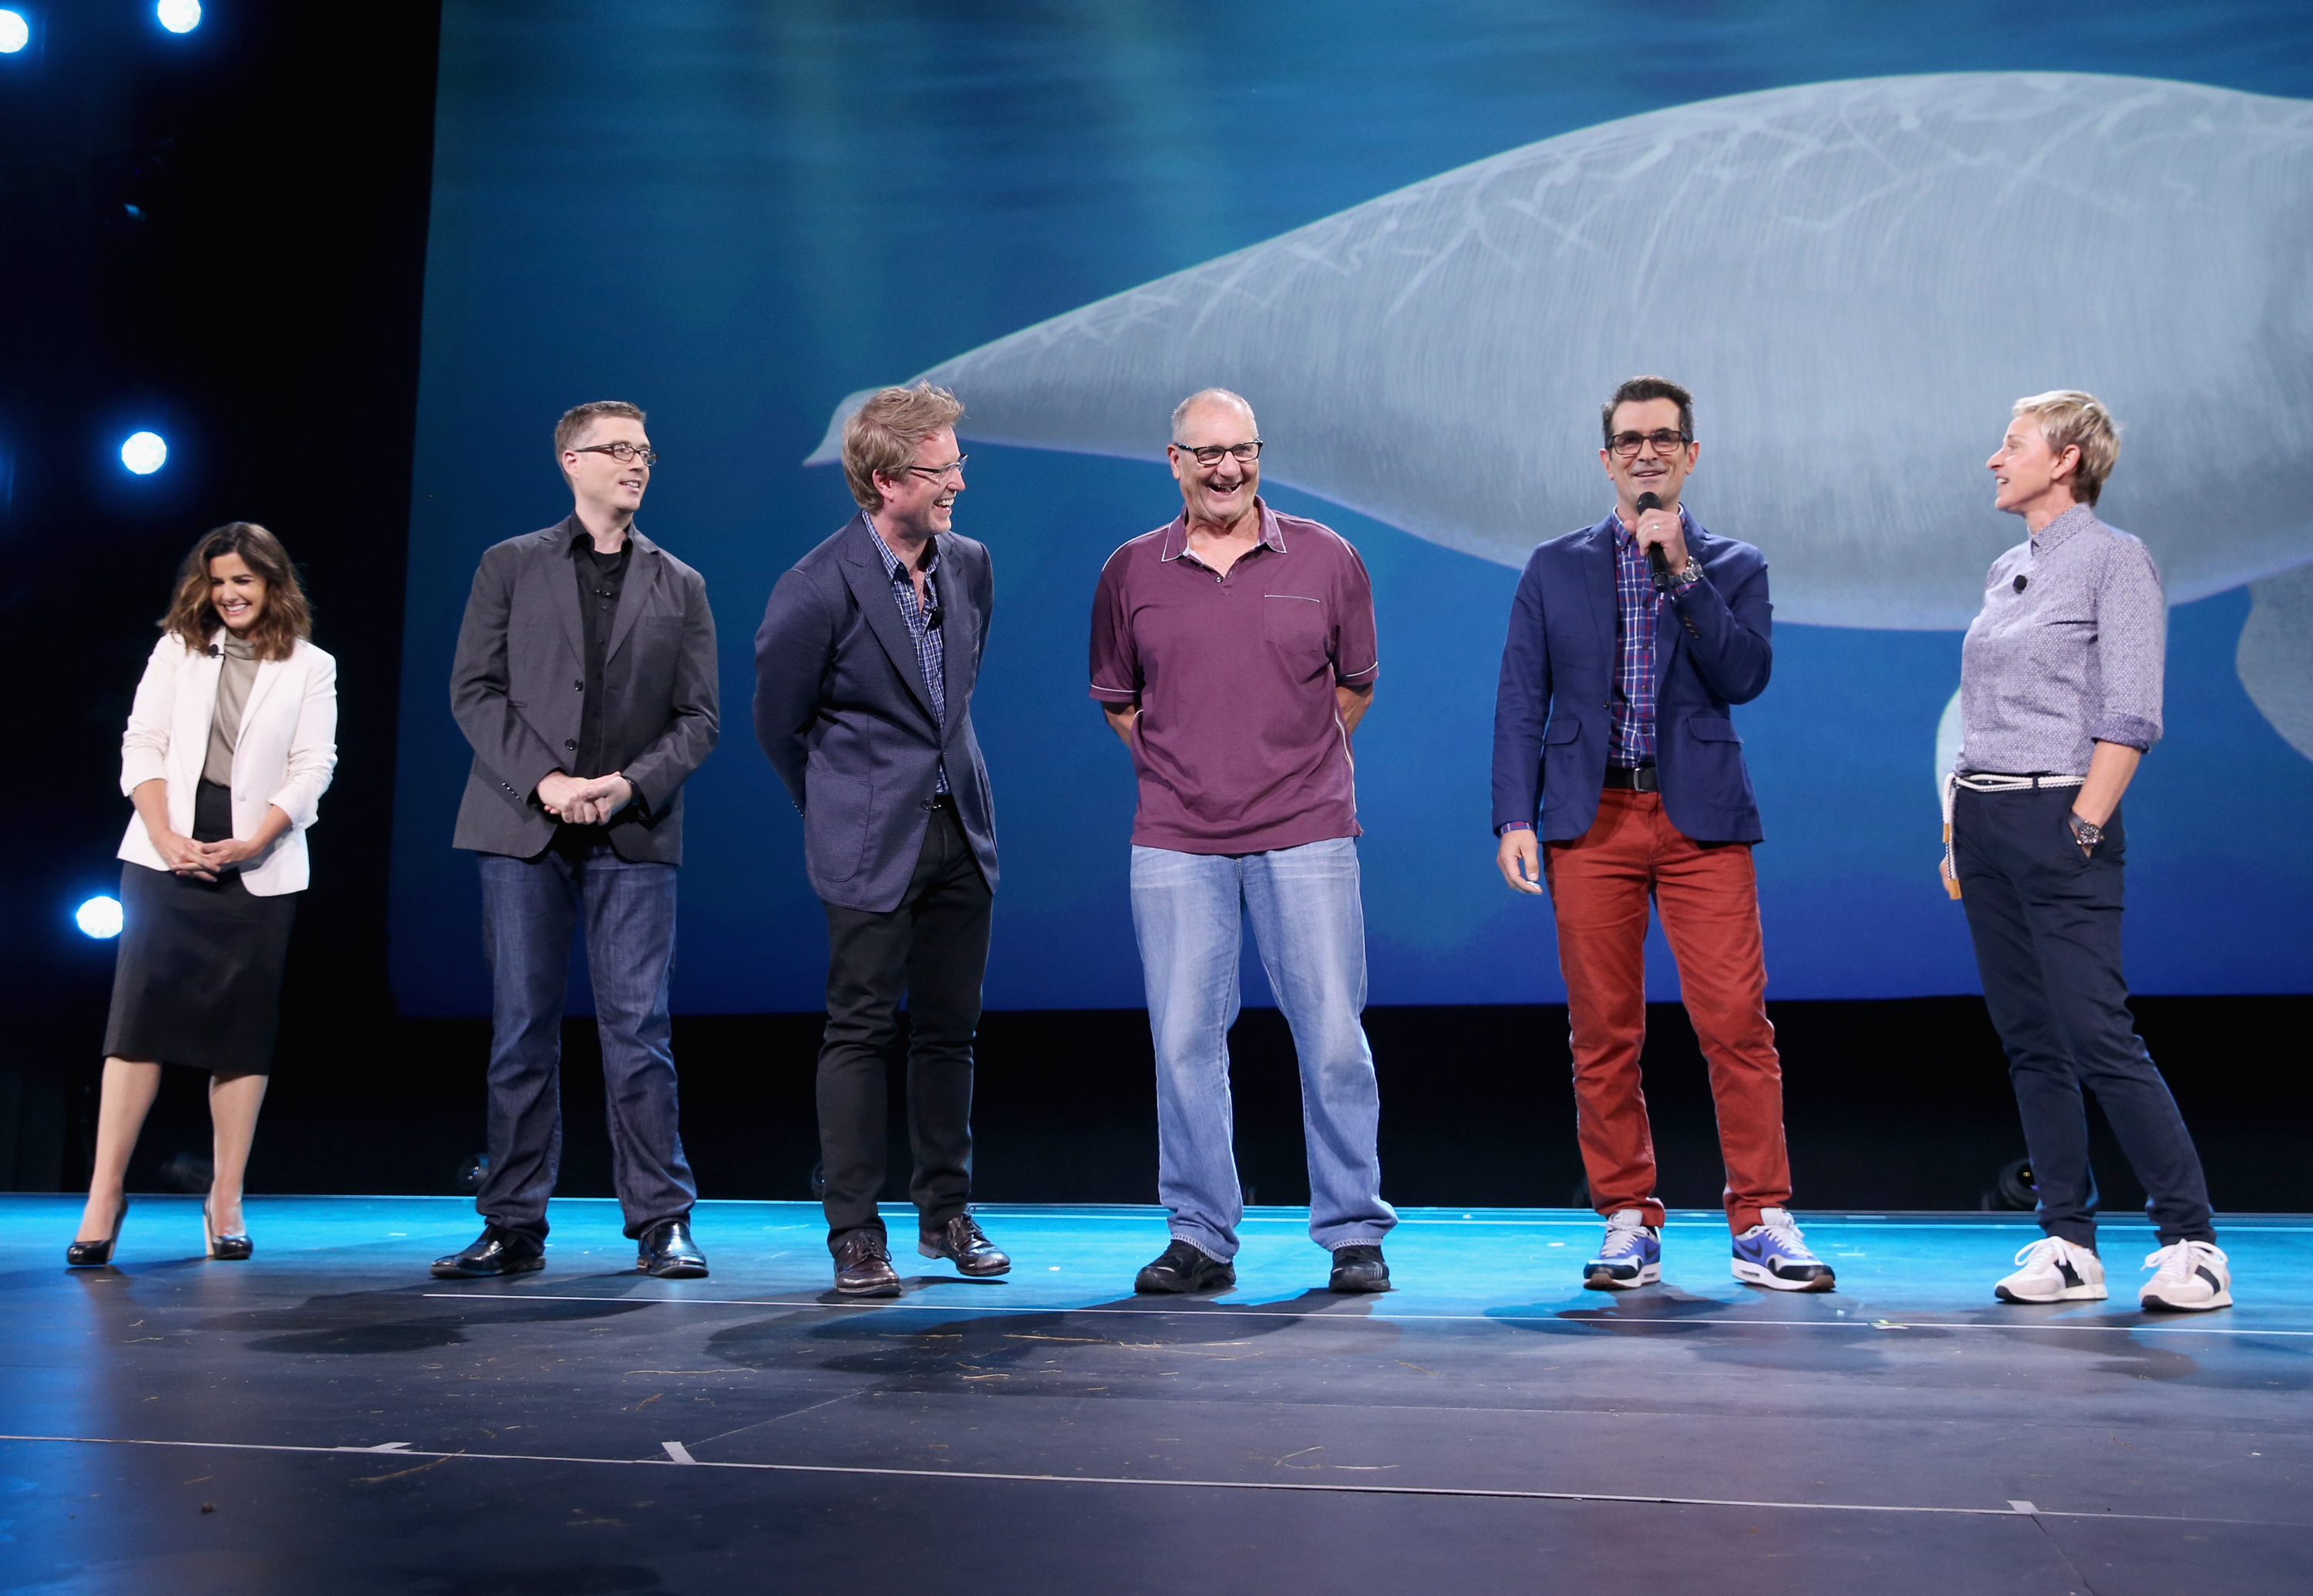 "ANAHEIM, CA - AUGUST 14:  (L-R) Producer Lindsey Collins, directors Angus MacLane and Andrew Stanton and actors Ed O'Neill, Ty Burrell and Ellen DeGeneres of FINDING DORY took part today in ""Pixar and Walt Disney Animation Studios: The Upcoming Films"" presentation at Disney's D23 EXPO 2015 in Anaheim, Calif.  (Photo by Jesse Grant/Getty Images for Disney) *** Local Caption *** Ellen DeGeneres; Ed O'Neill; Lindsey Collins; Angus MacLane; Andrew Stanton; Ty Burrell"